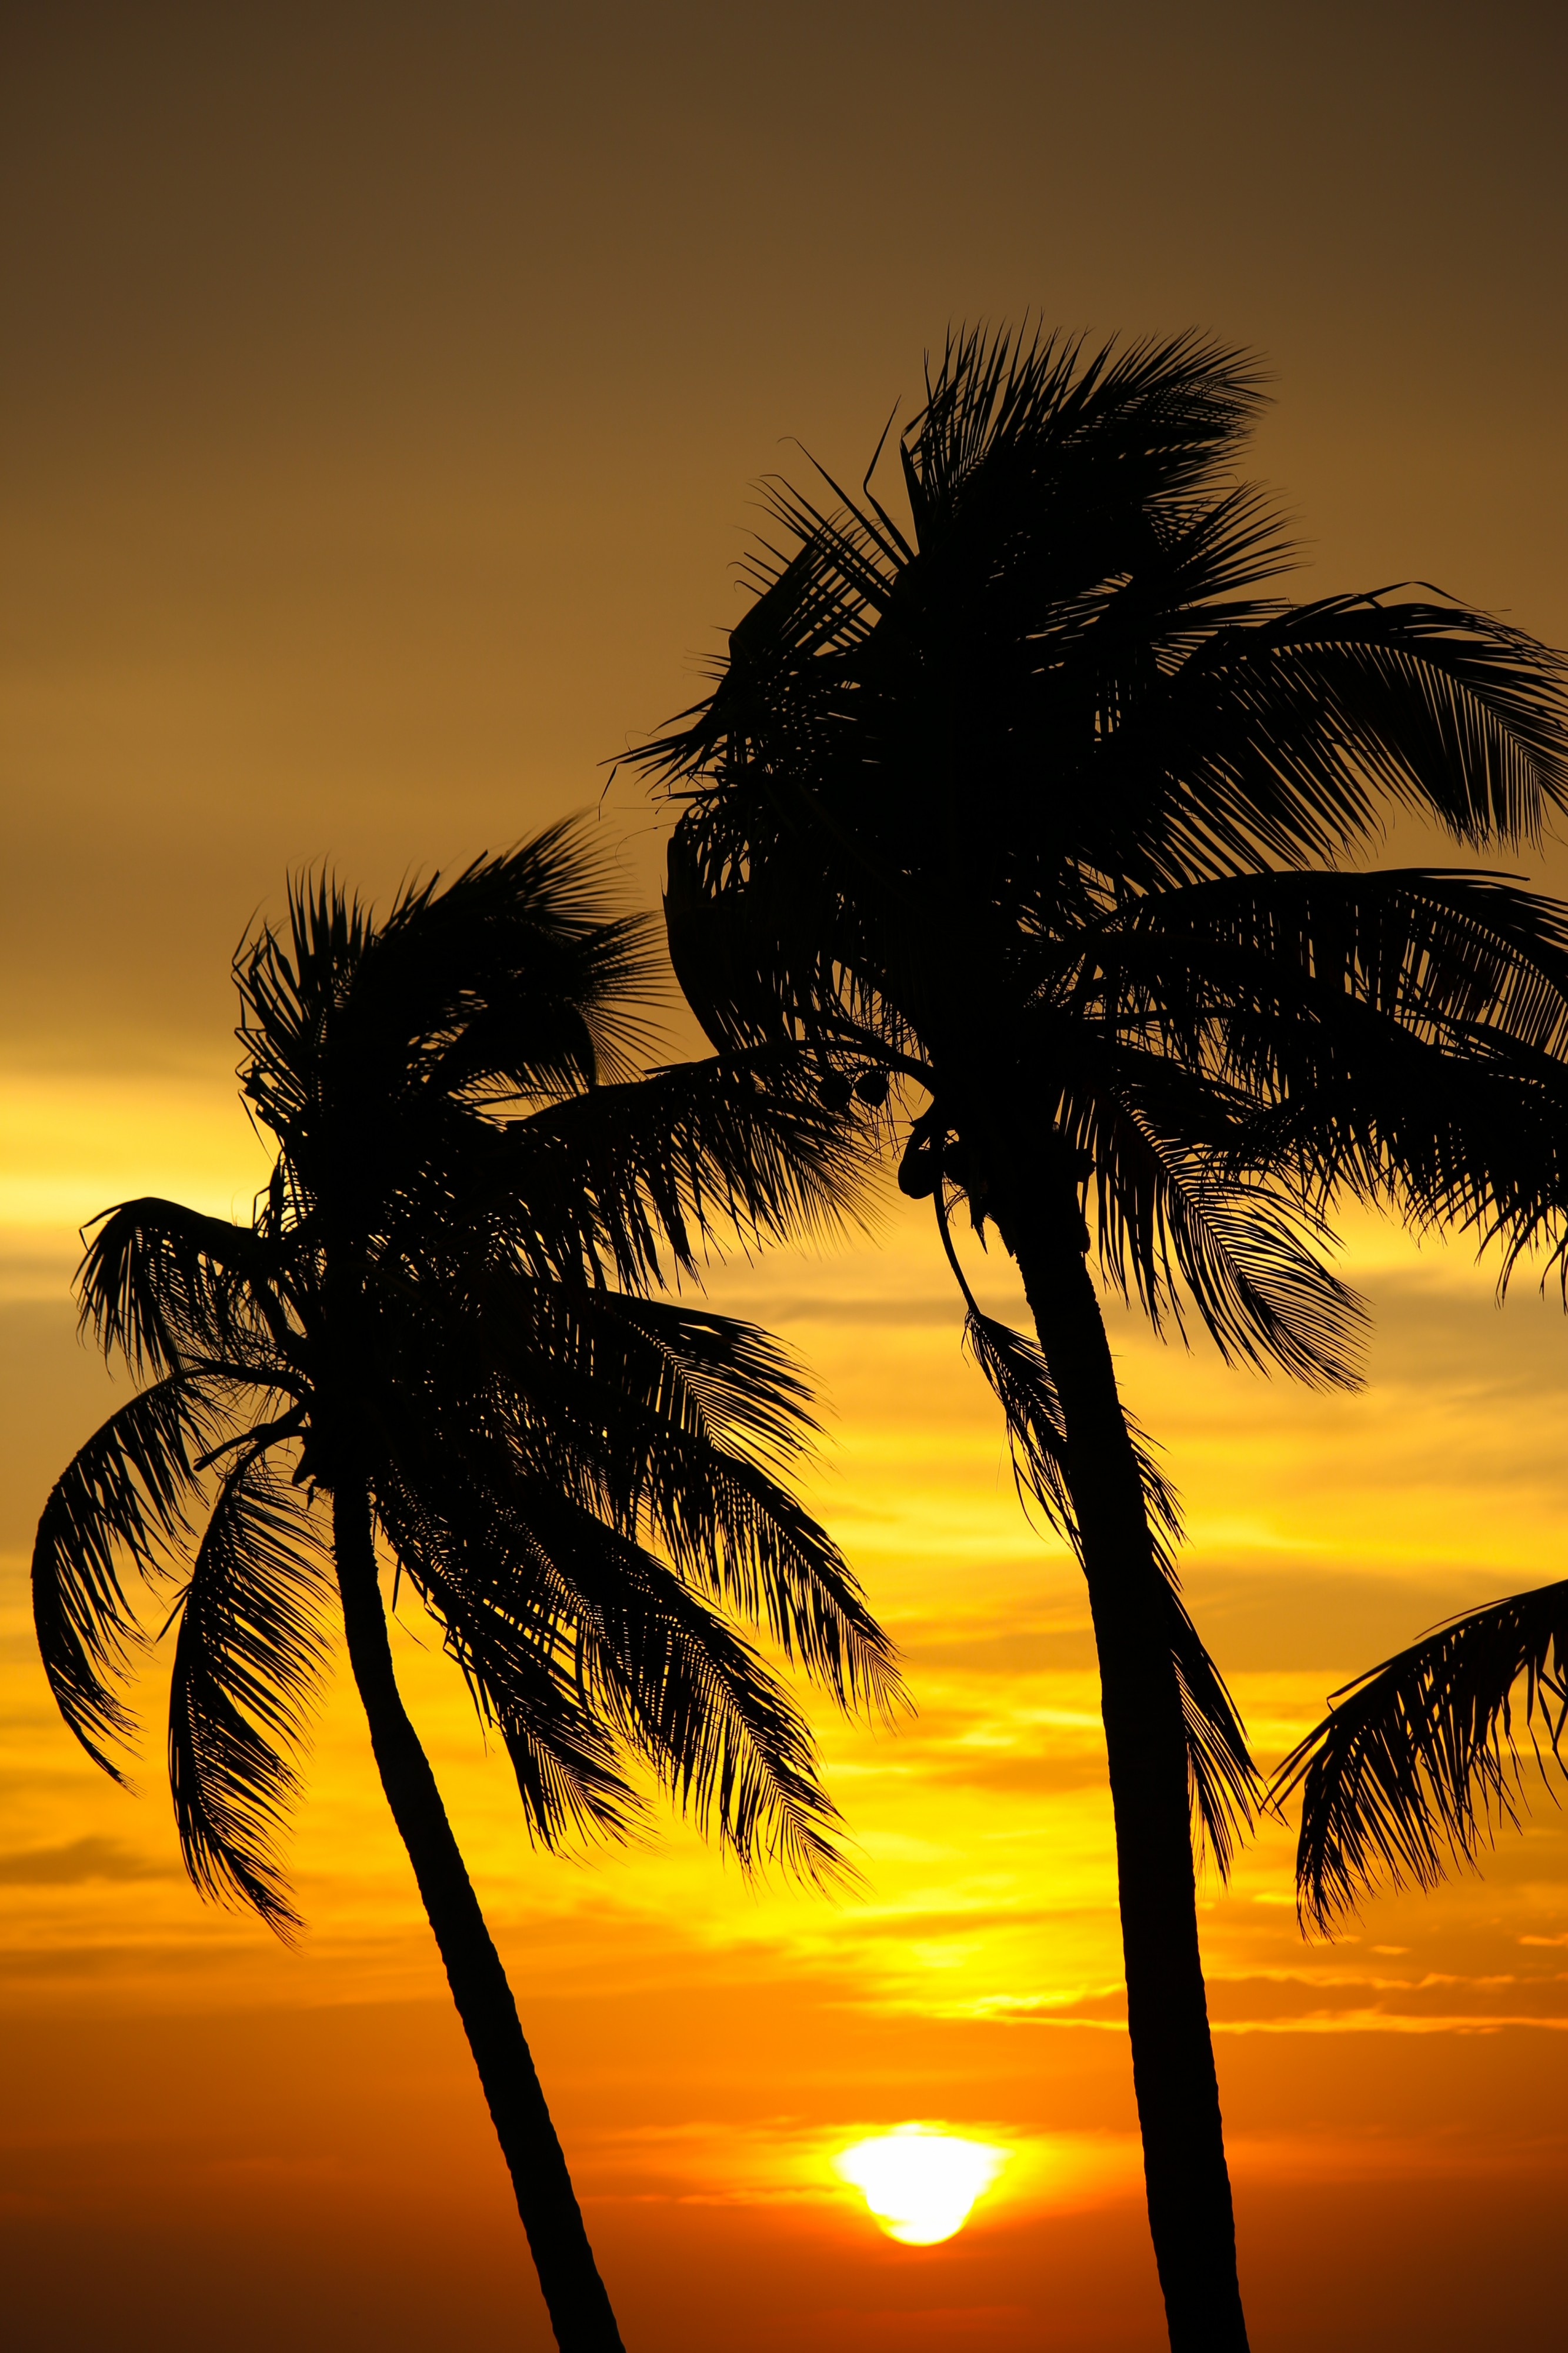 Sunset on Smathers Beach, Key West - Flickr - Joe Parks